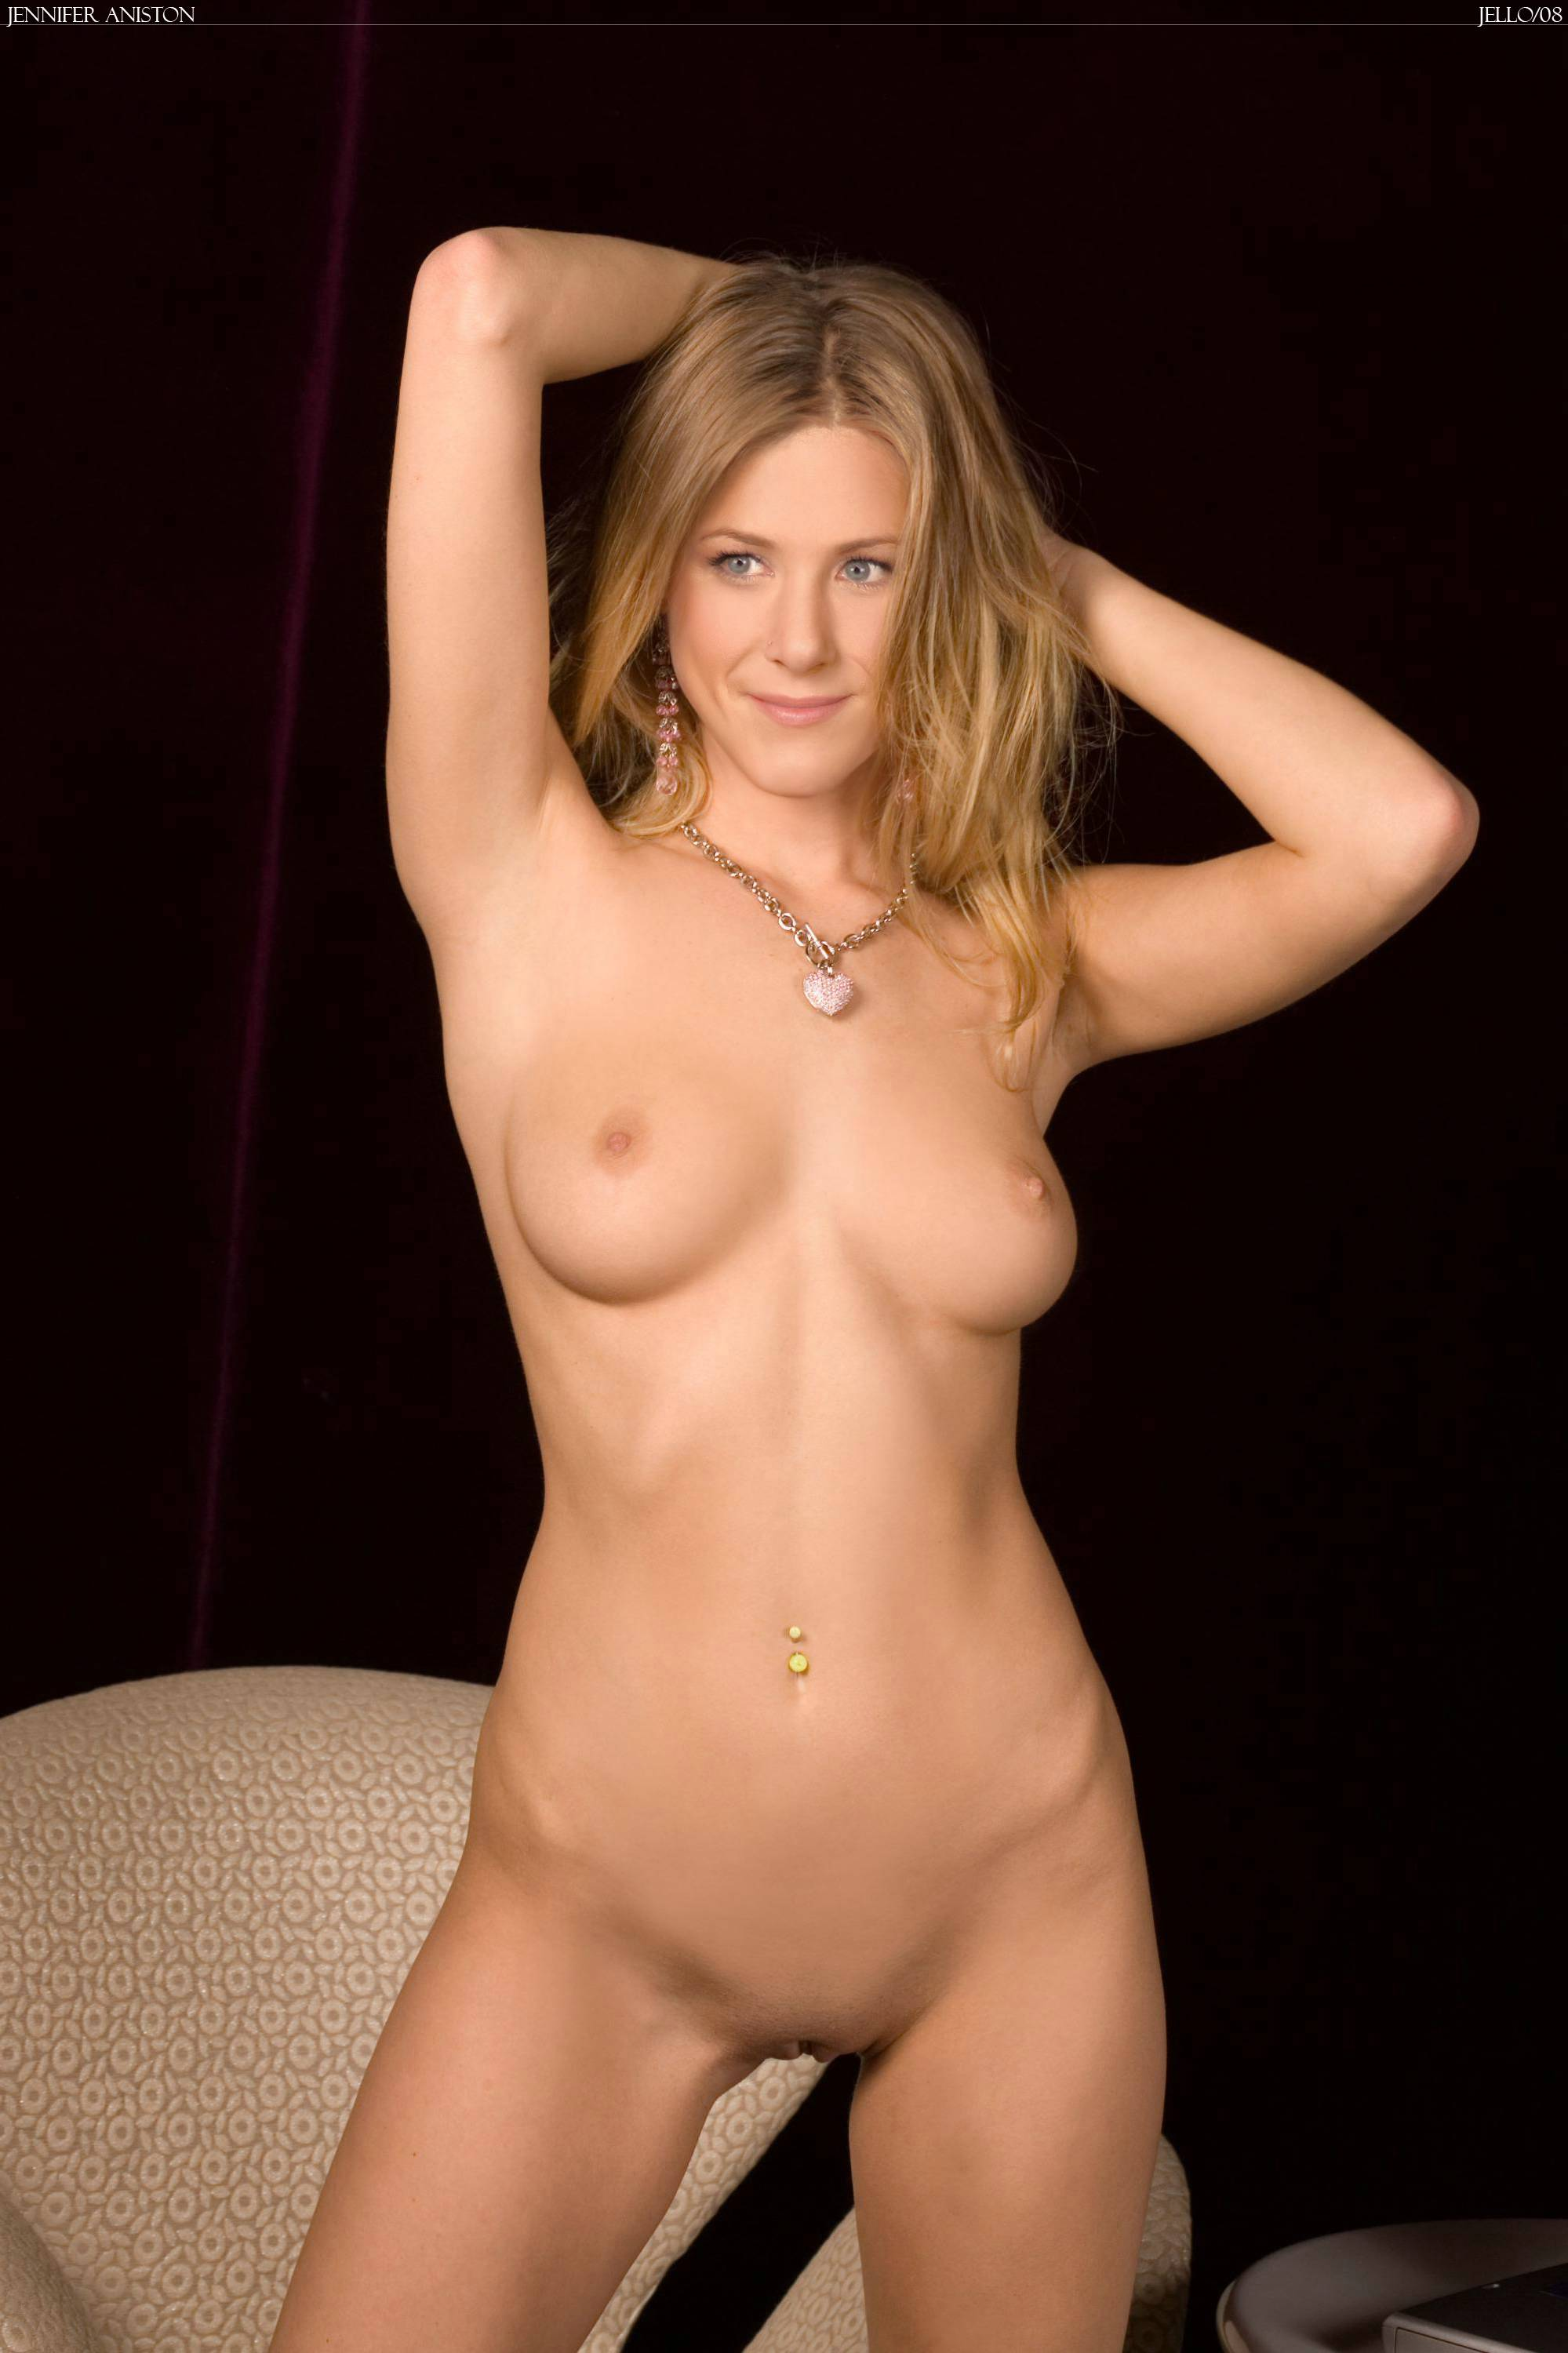 brazilian mature nudist